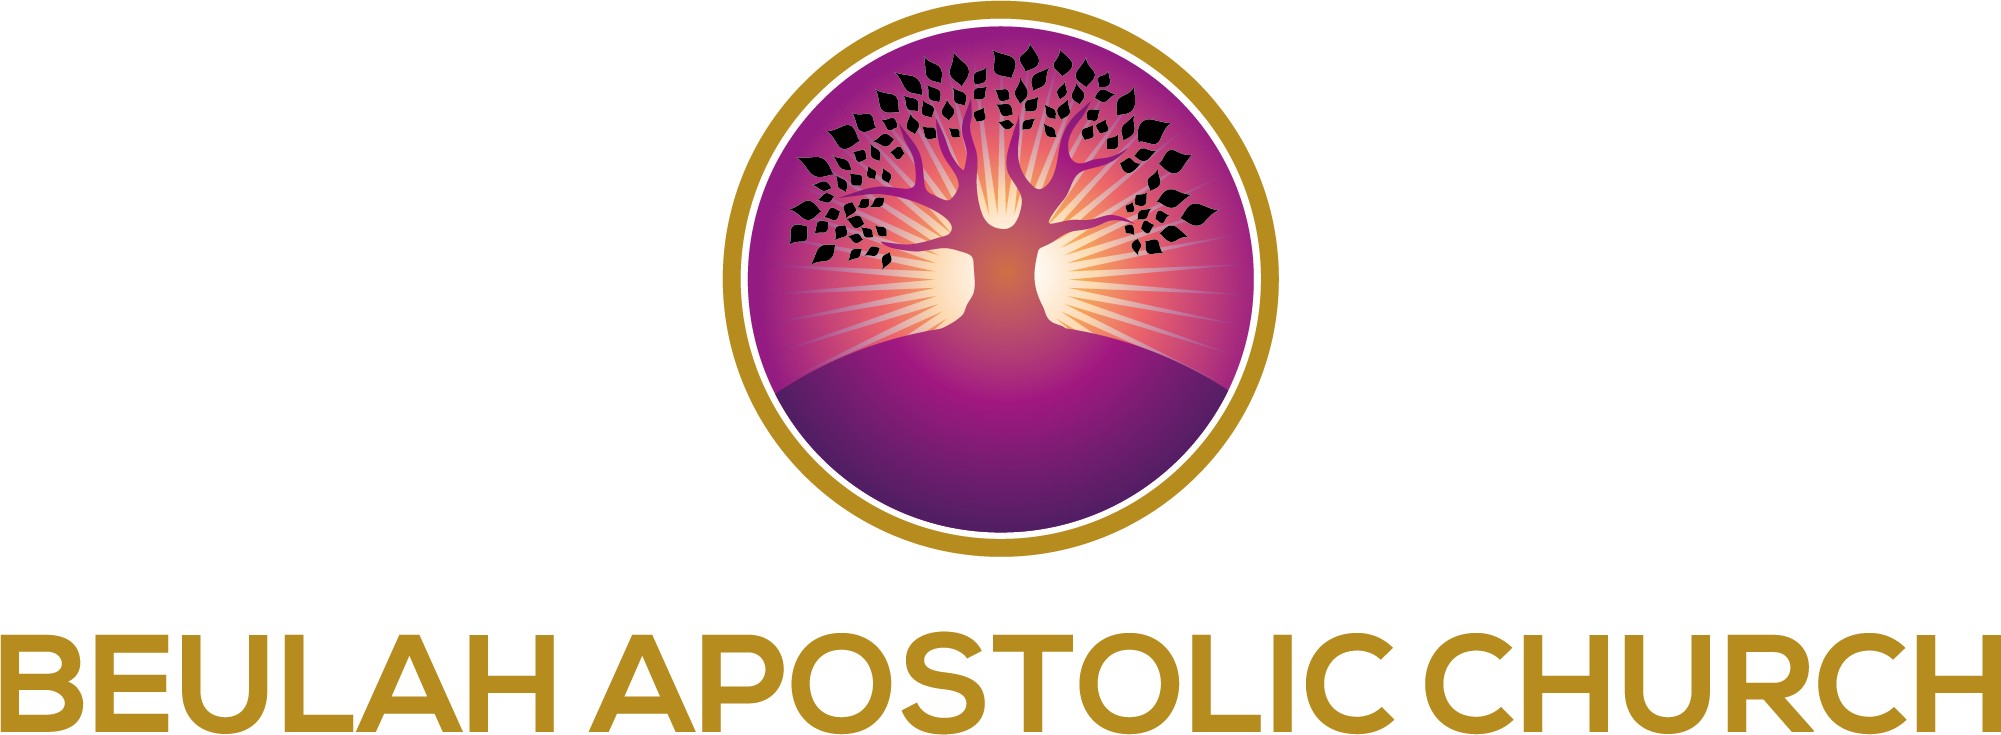 BEULAH APPOSTOLIC CHURCH - ... is hosted at St Stephen Church each Sunday and on two evenings in the week and is led by Pastor Carlton Trout. Click here for more information.